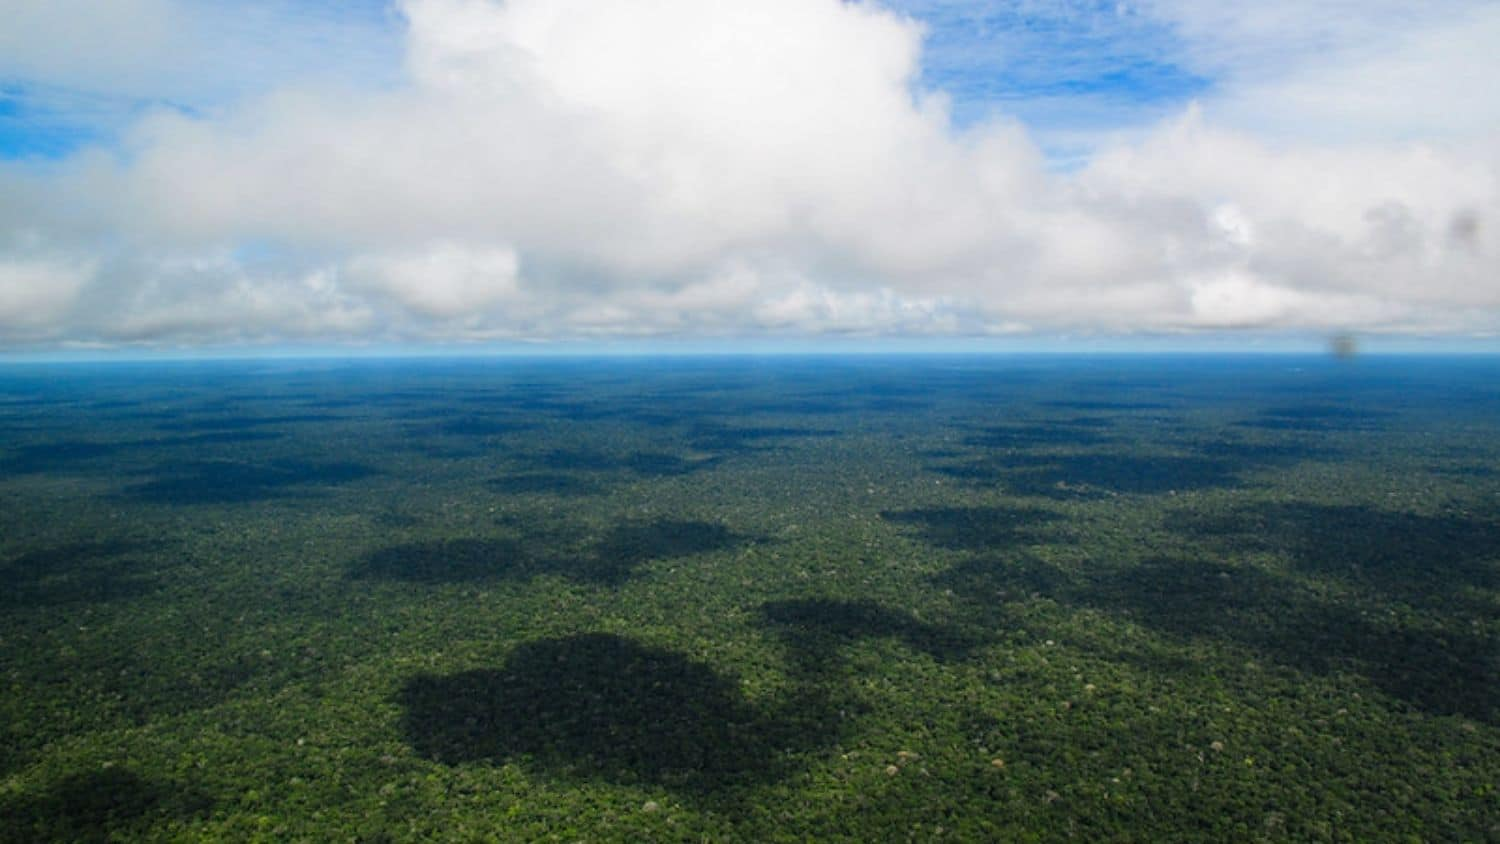 Aerial view of the Amazon rainforest.